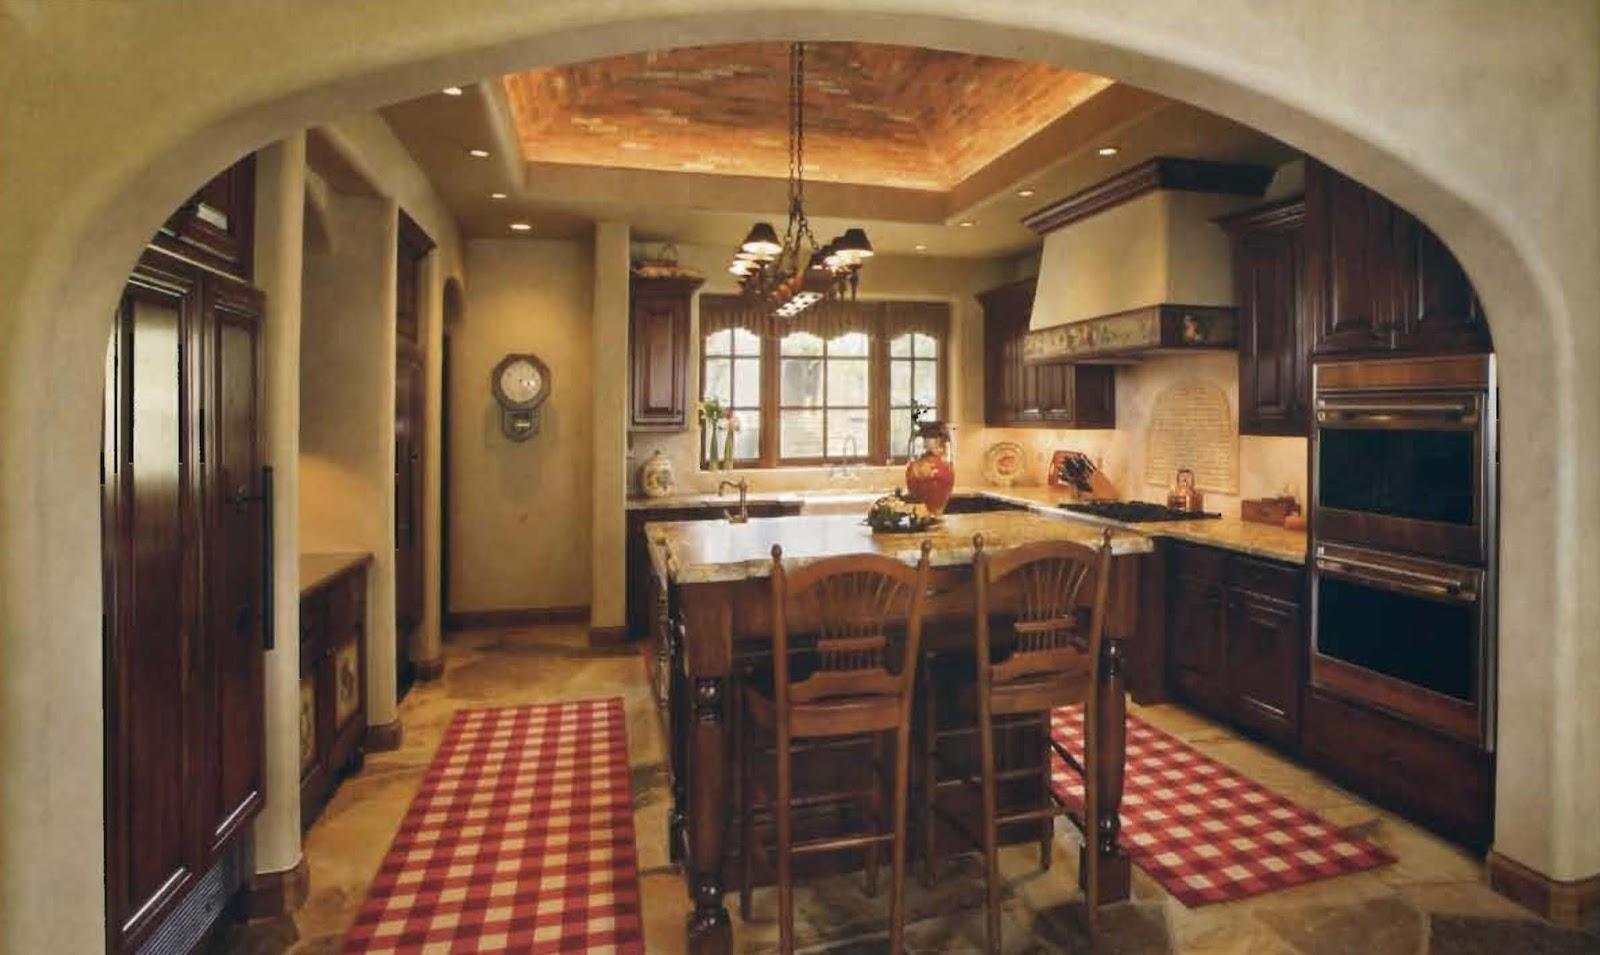 how to apply country kitchen ideas country kitchen ideas How to Apply Country Kitchen Ideas